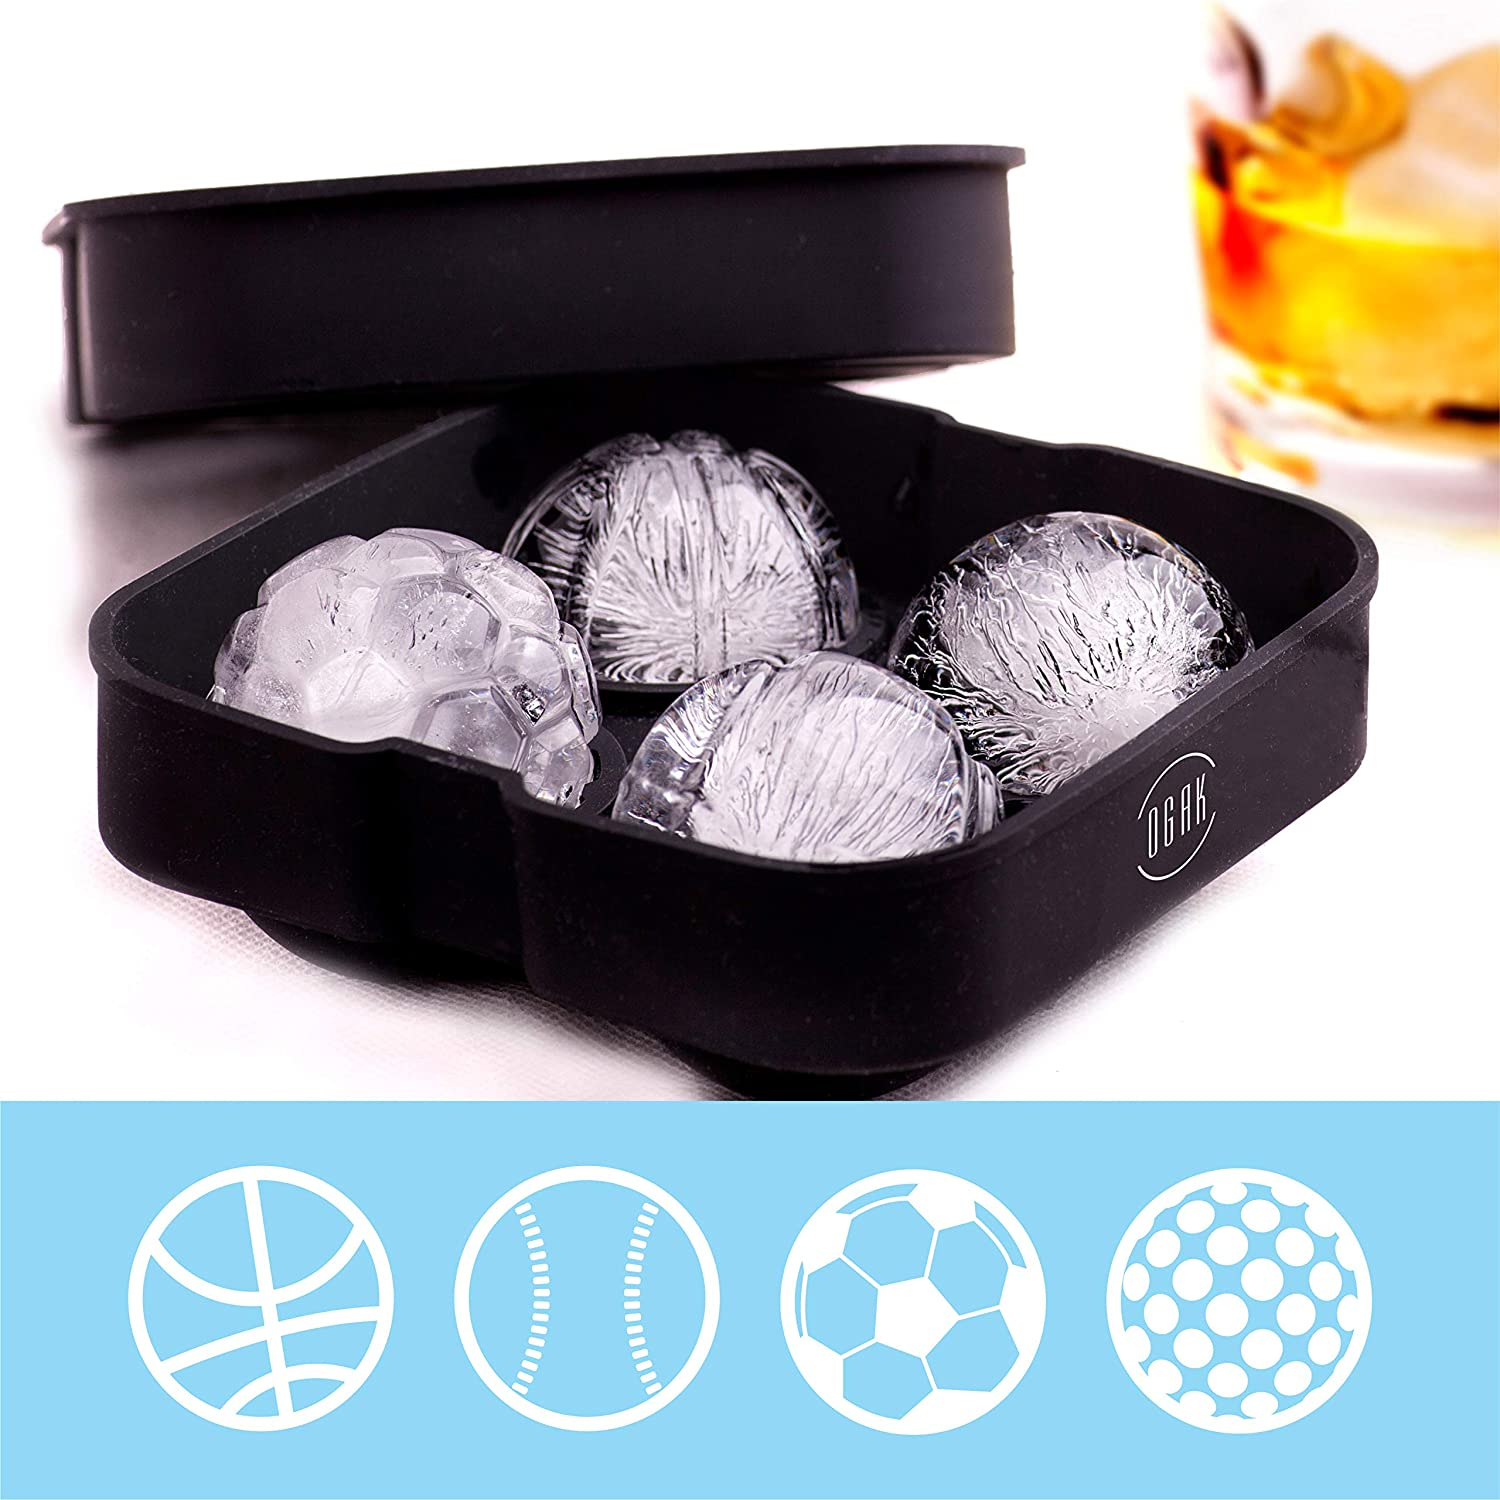 Ice Ball Maker for Whiskey, Silicone Ice Sphere Maker, Ice Mold in Sports Balls Shapes by OGAK